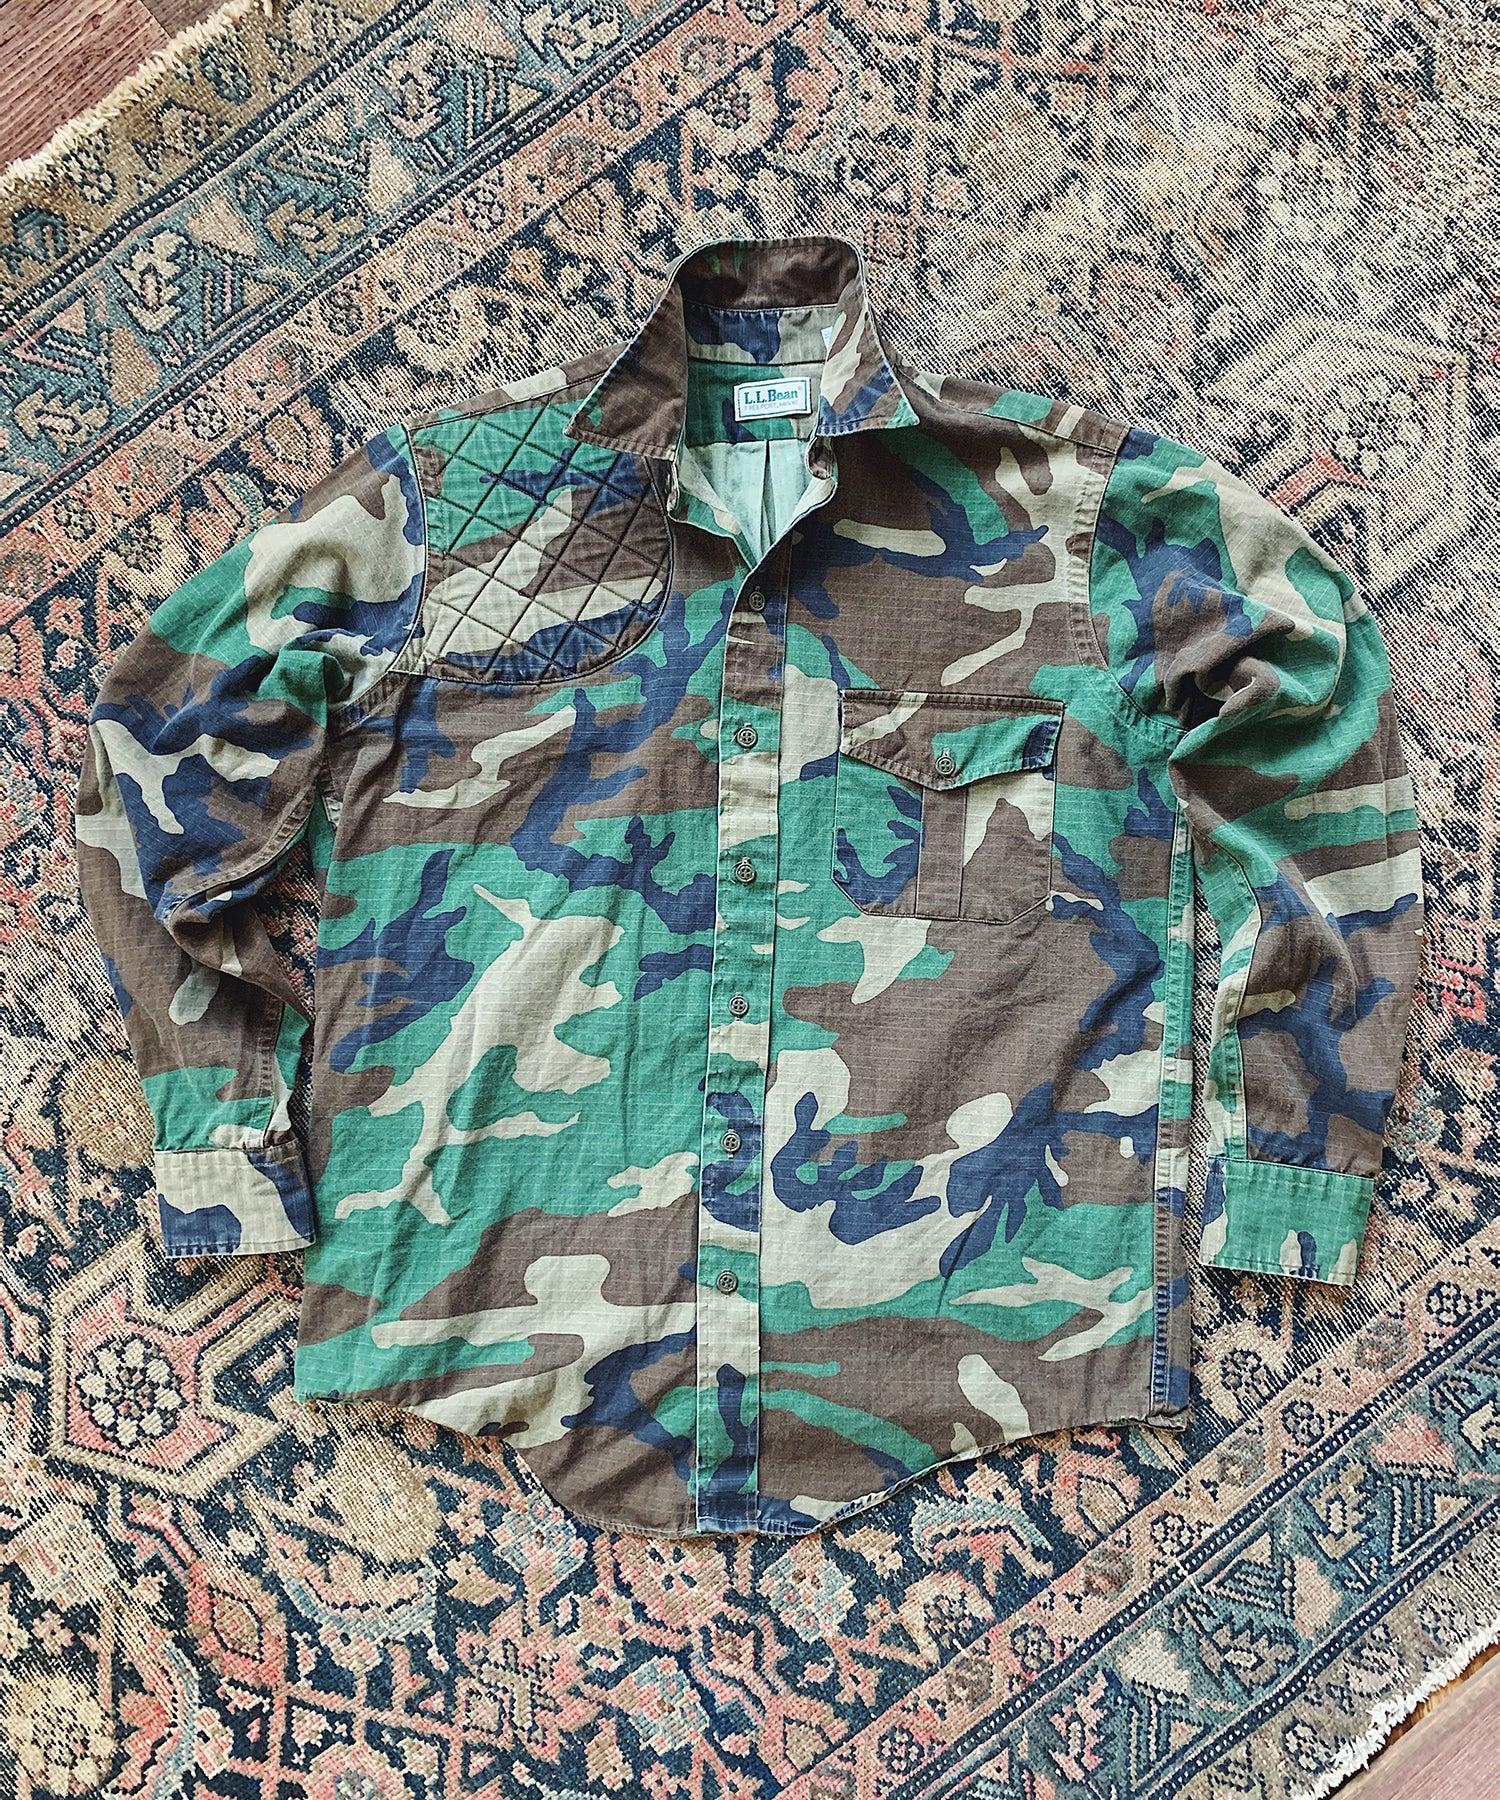 Item #21 - Todd Snyder x Wooden Sleepers 1980's Sportsman Shirt in Woodland Camo - SOLD OUT